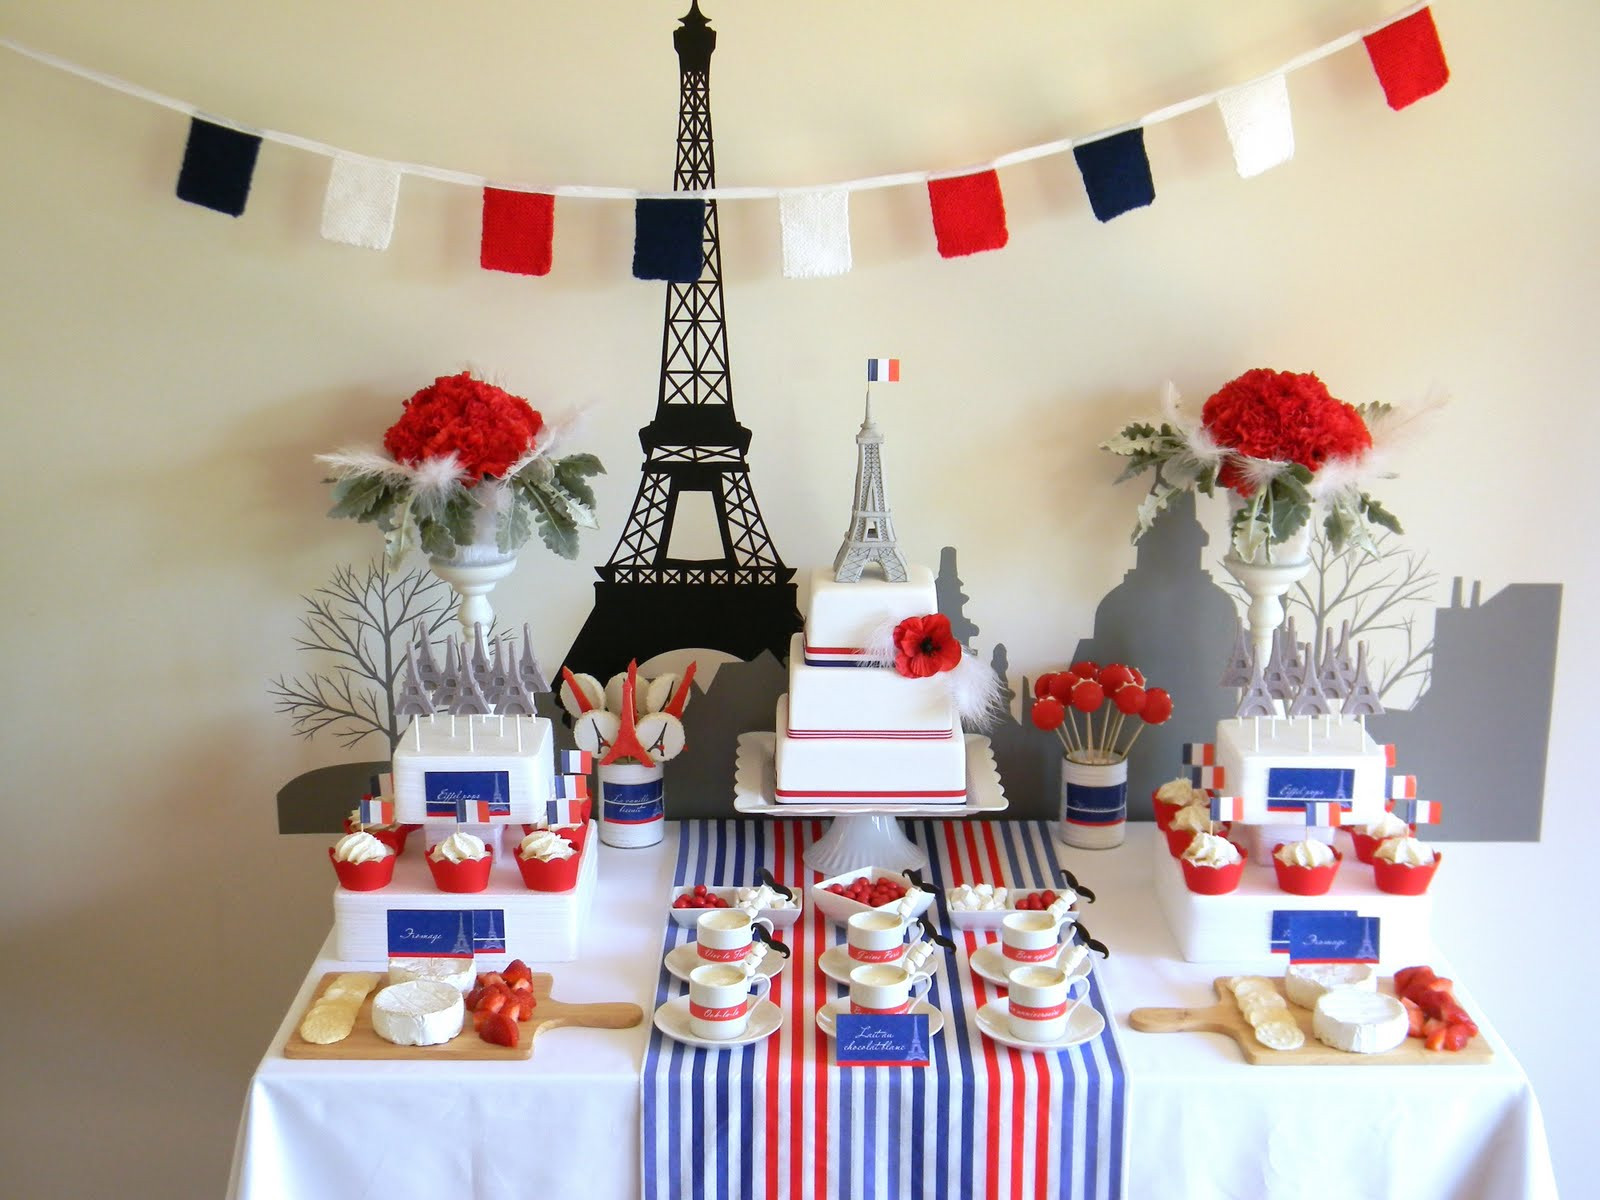 Best ideas about Paris Birthday Decorations . Save or Pin Just call me Martha Paris in winter lunch Now.